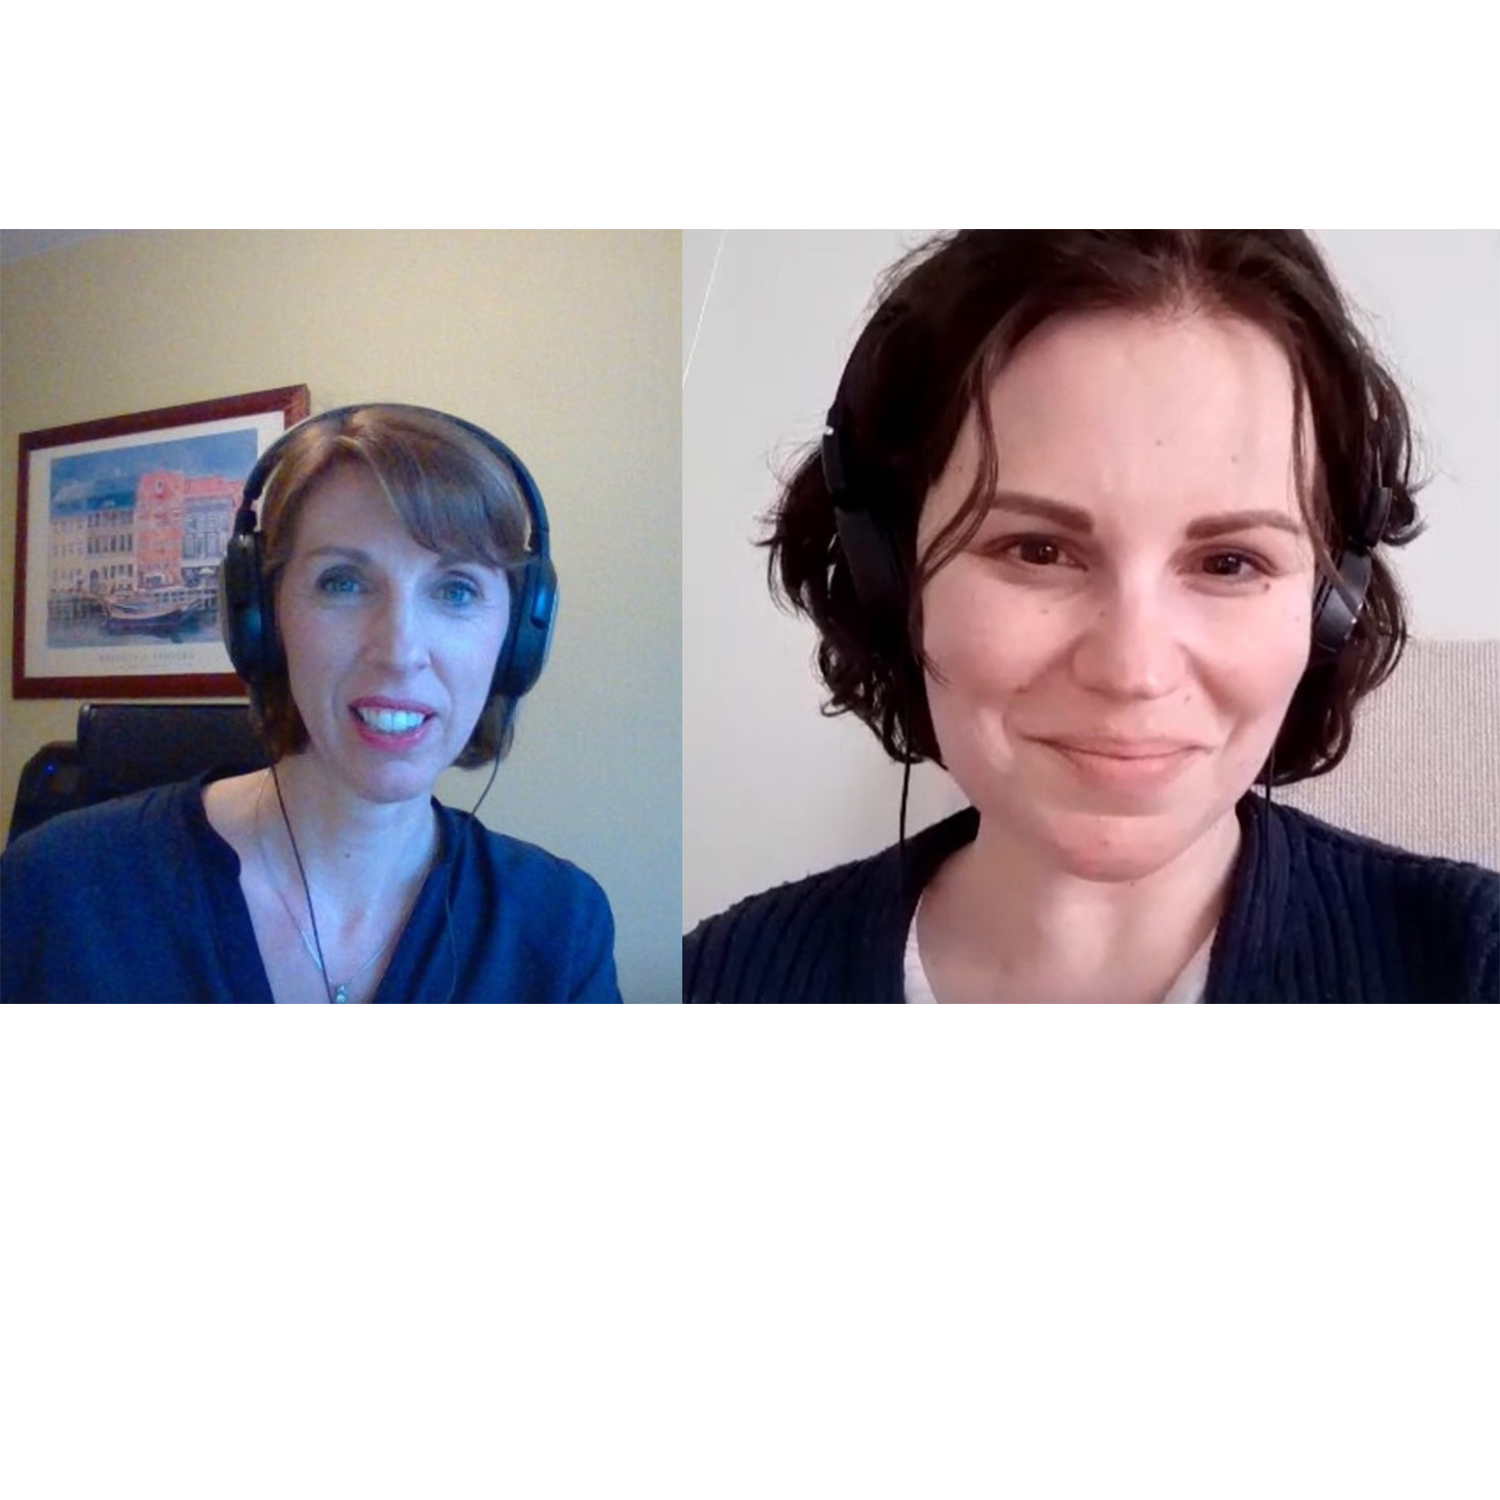 062 Menopause and Contraception - Dr Philippa Kaye & Dr Louise Newson